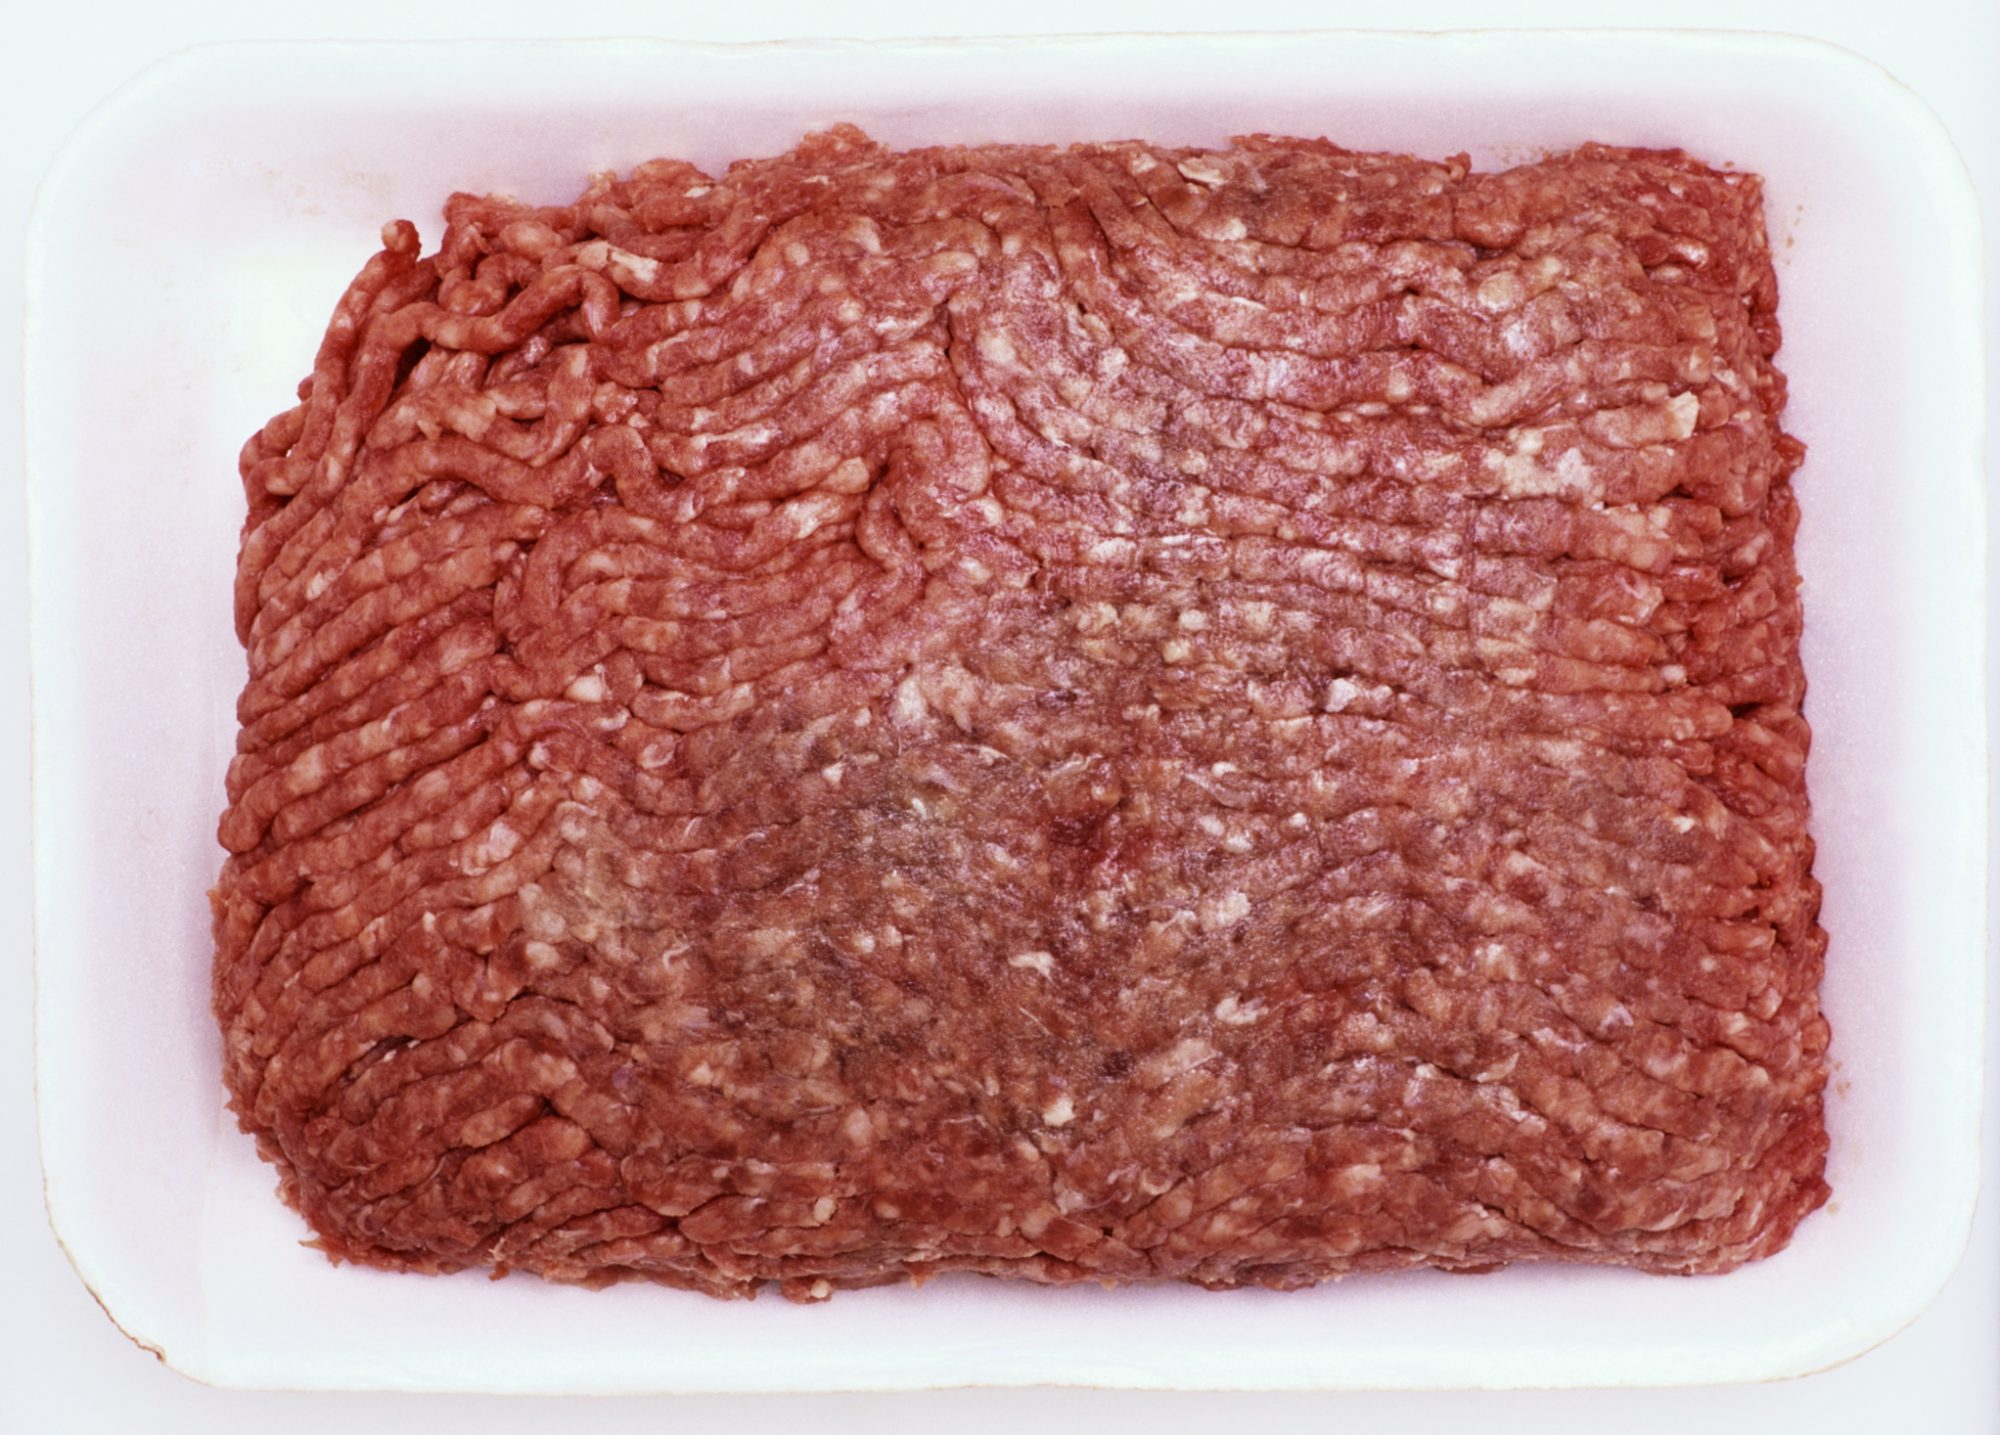 getty-ground-beef-image